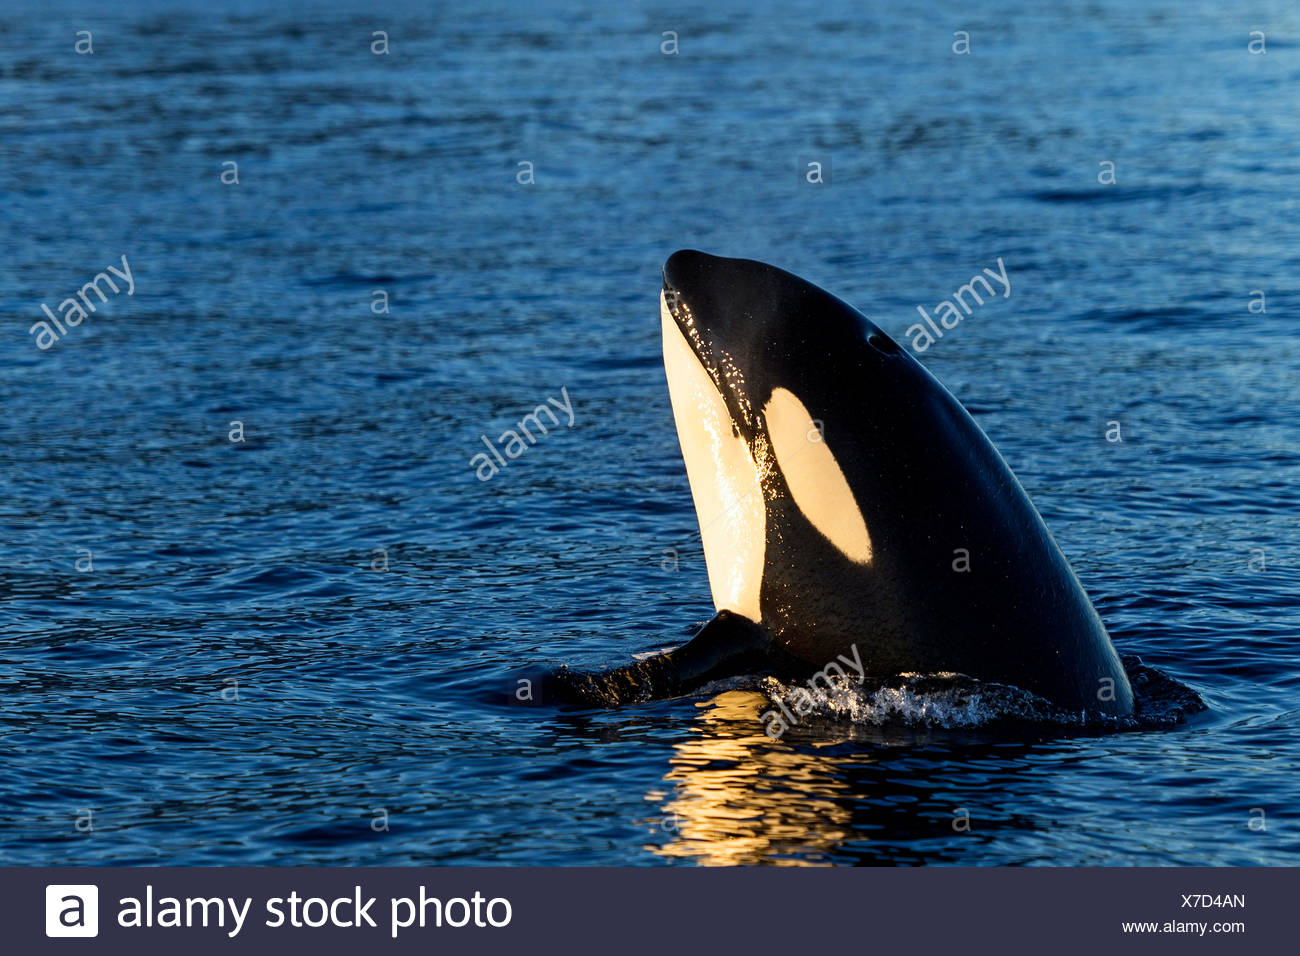 Orca (Orcinus orca) looking out of the water, Spyhopping, Kaldfjorden, Tromvik, Norway - Stock Image